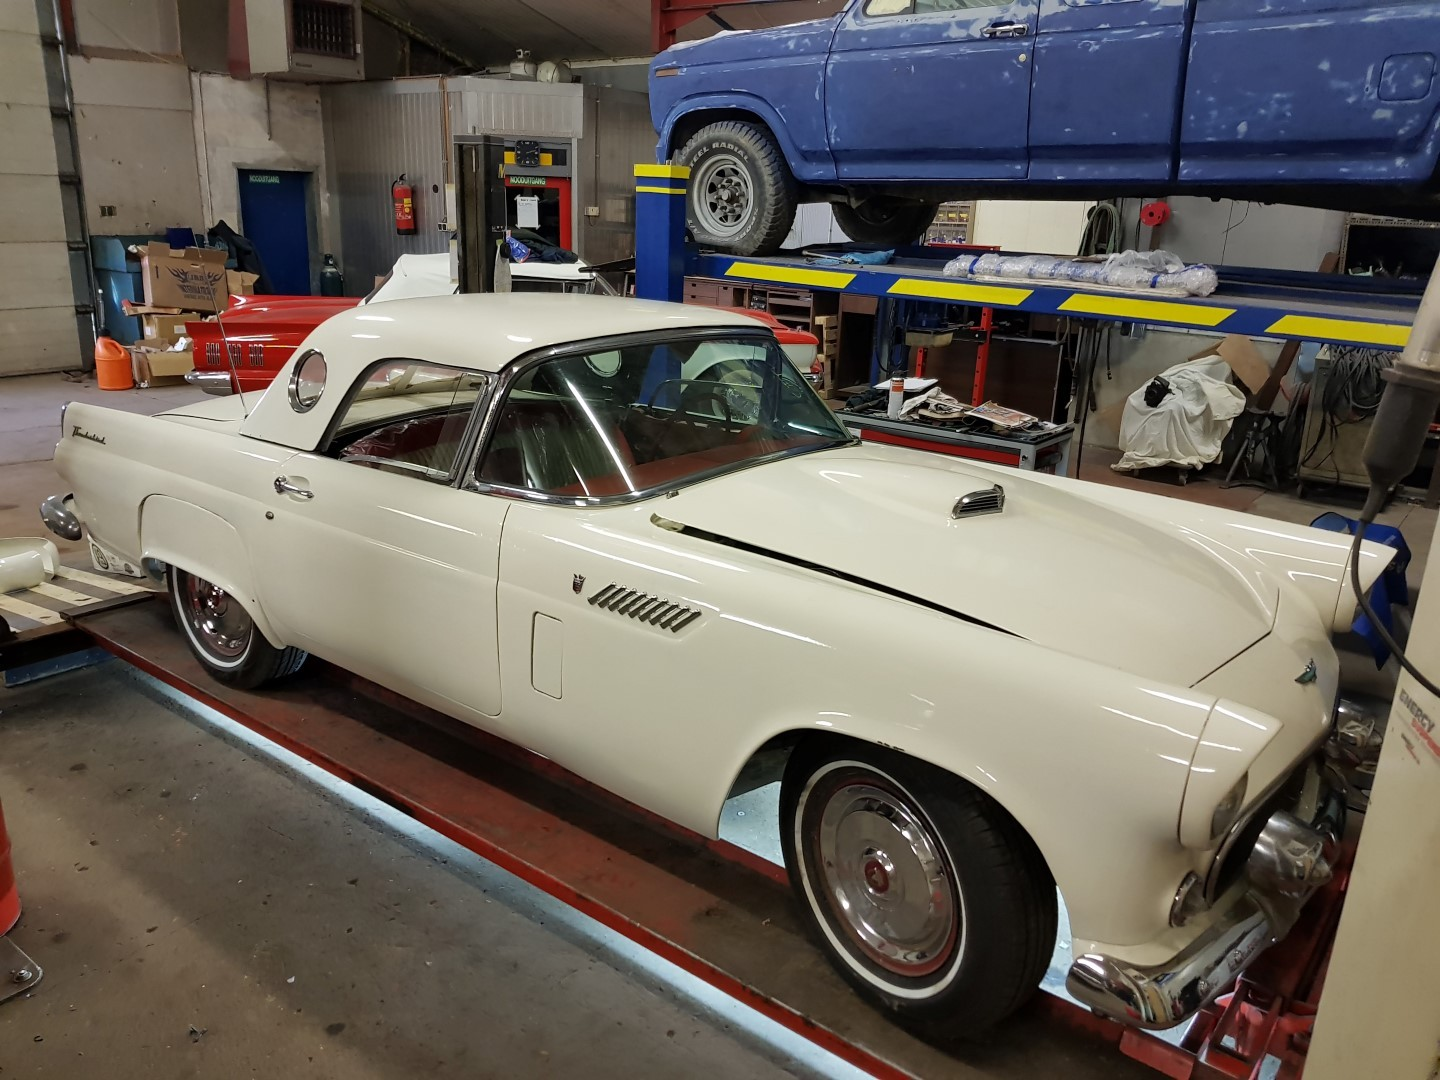 1956 Ford Thunderbird - 312ci V8 and automatic (12)